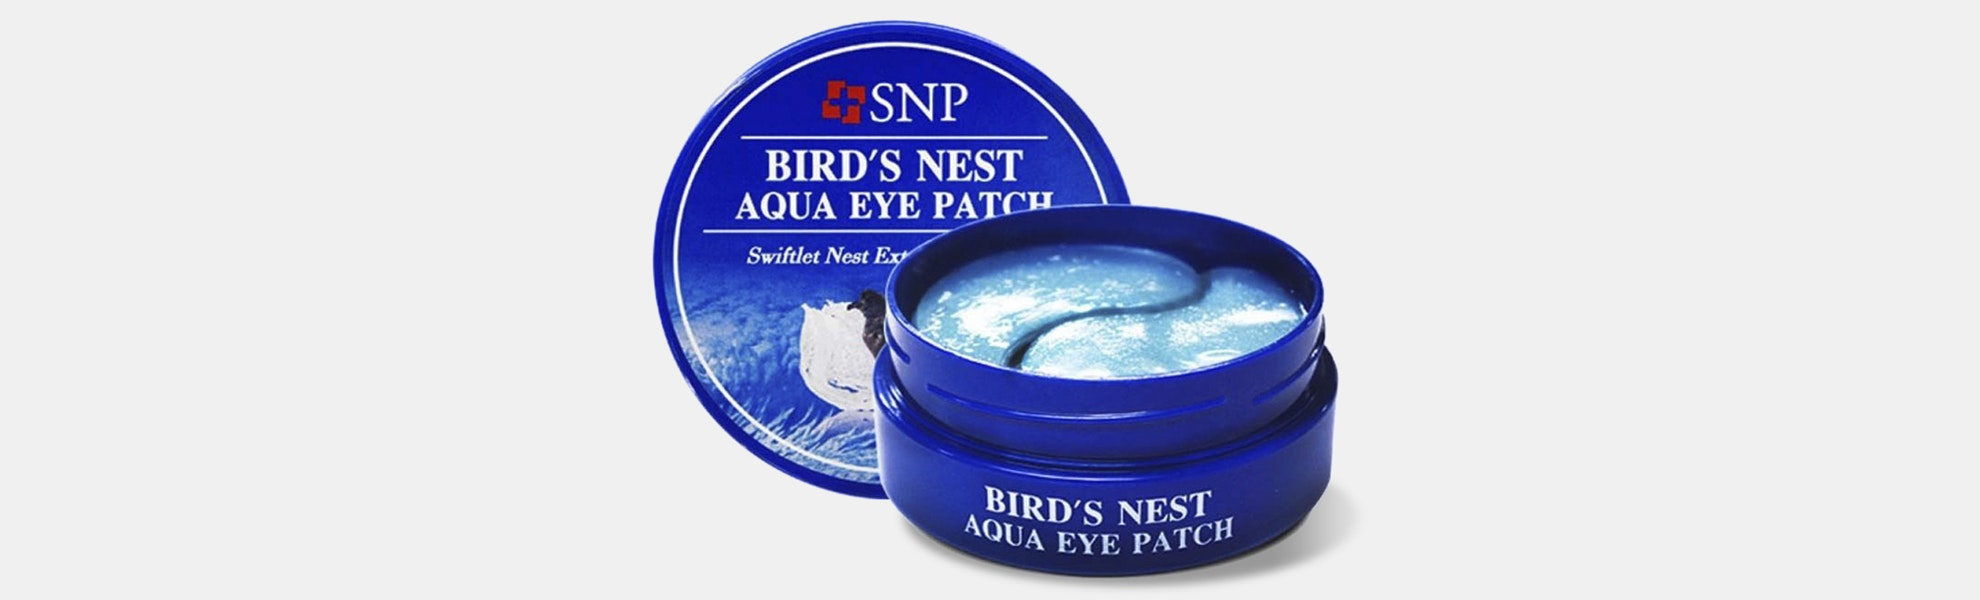 SNP Bird's Nest Aqua Eye Patches (120 Count)